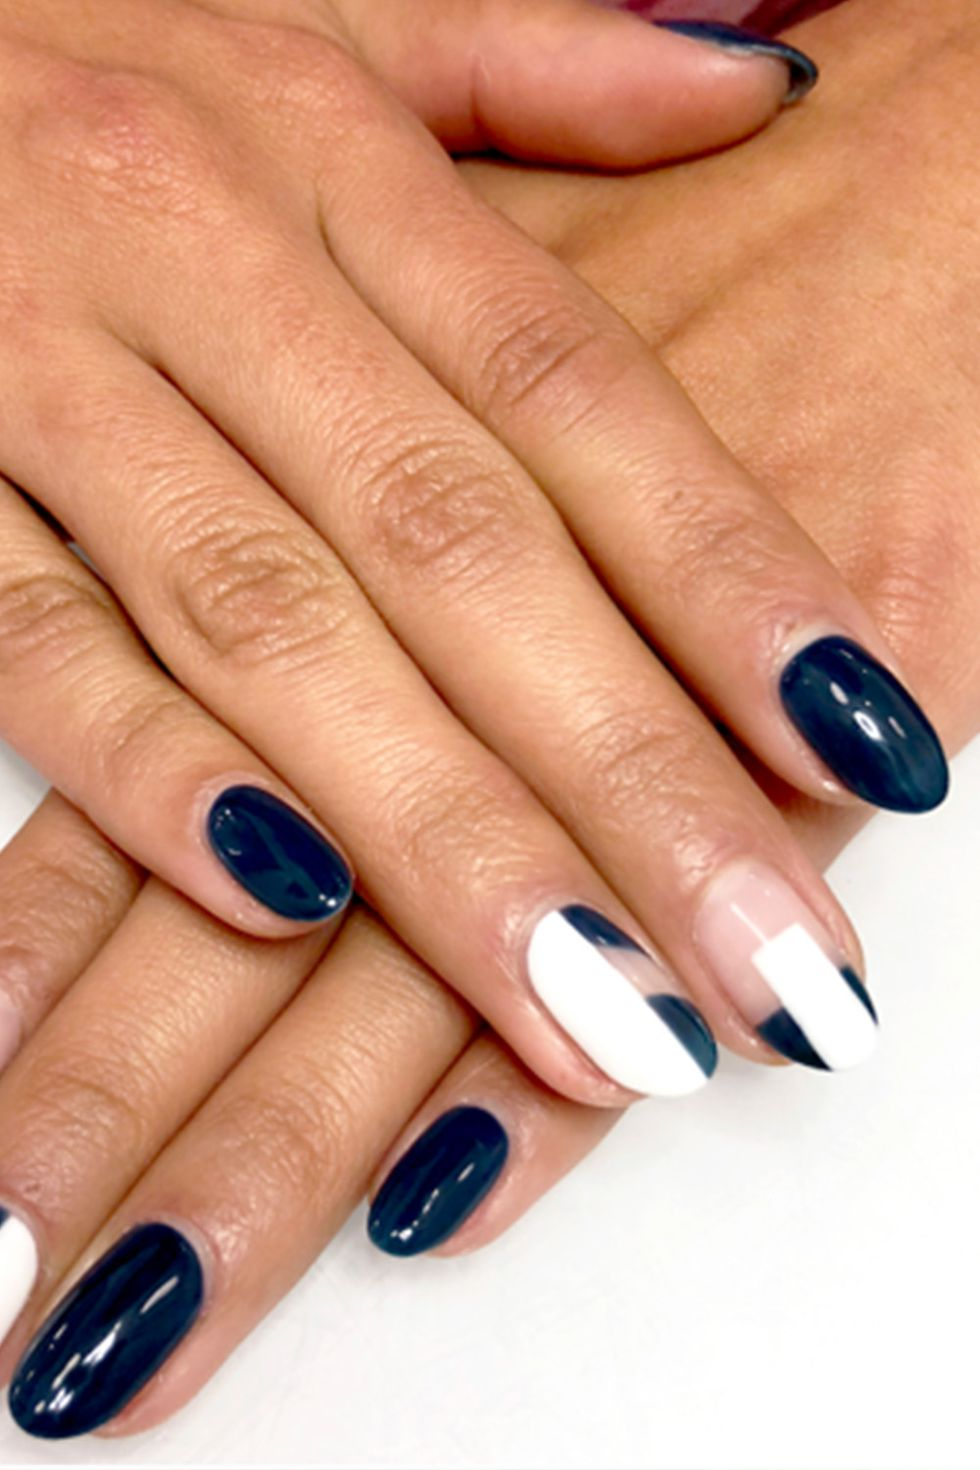 Almond Shaped Nails in Navy and White Color-vvpretty